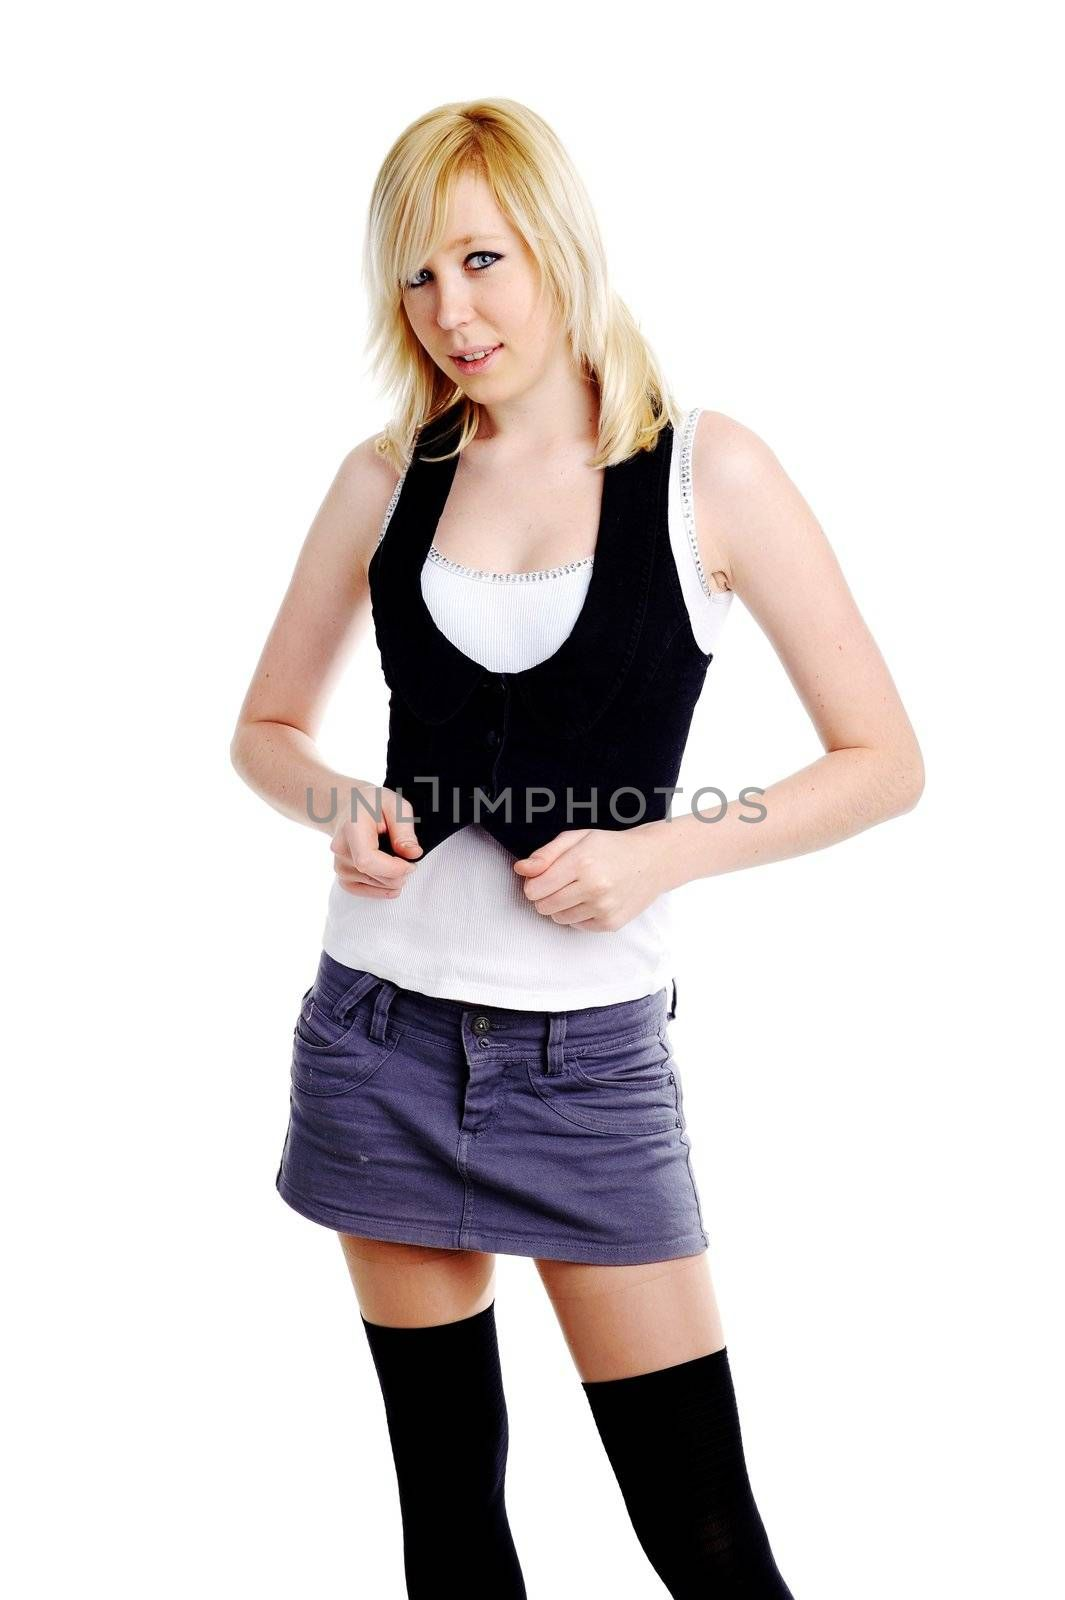 A portrait of a pretty girl in short skirt